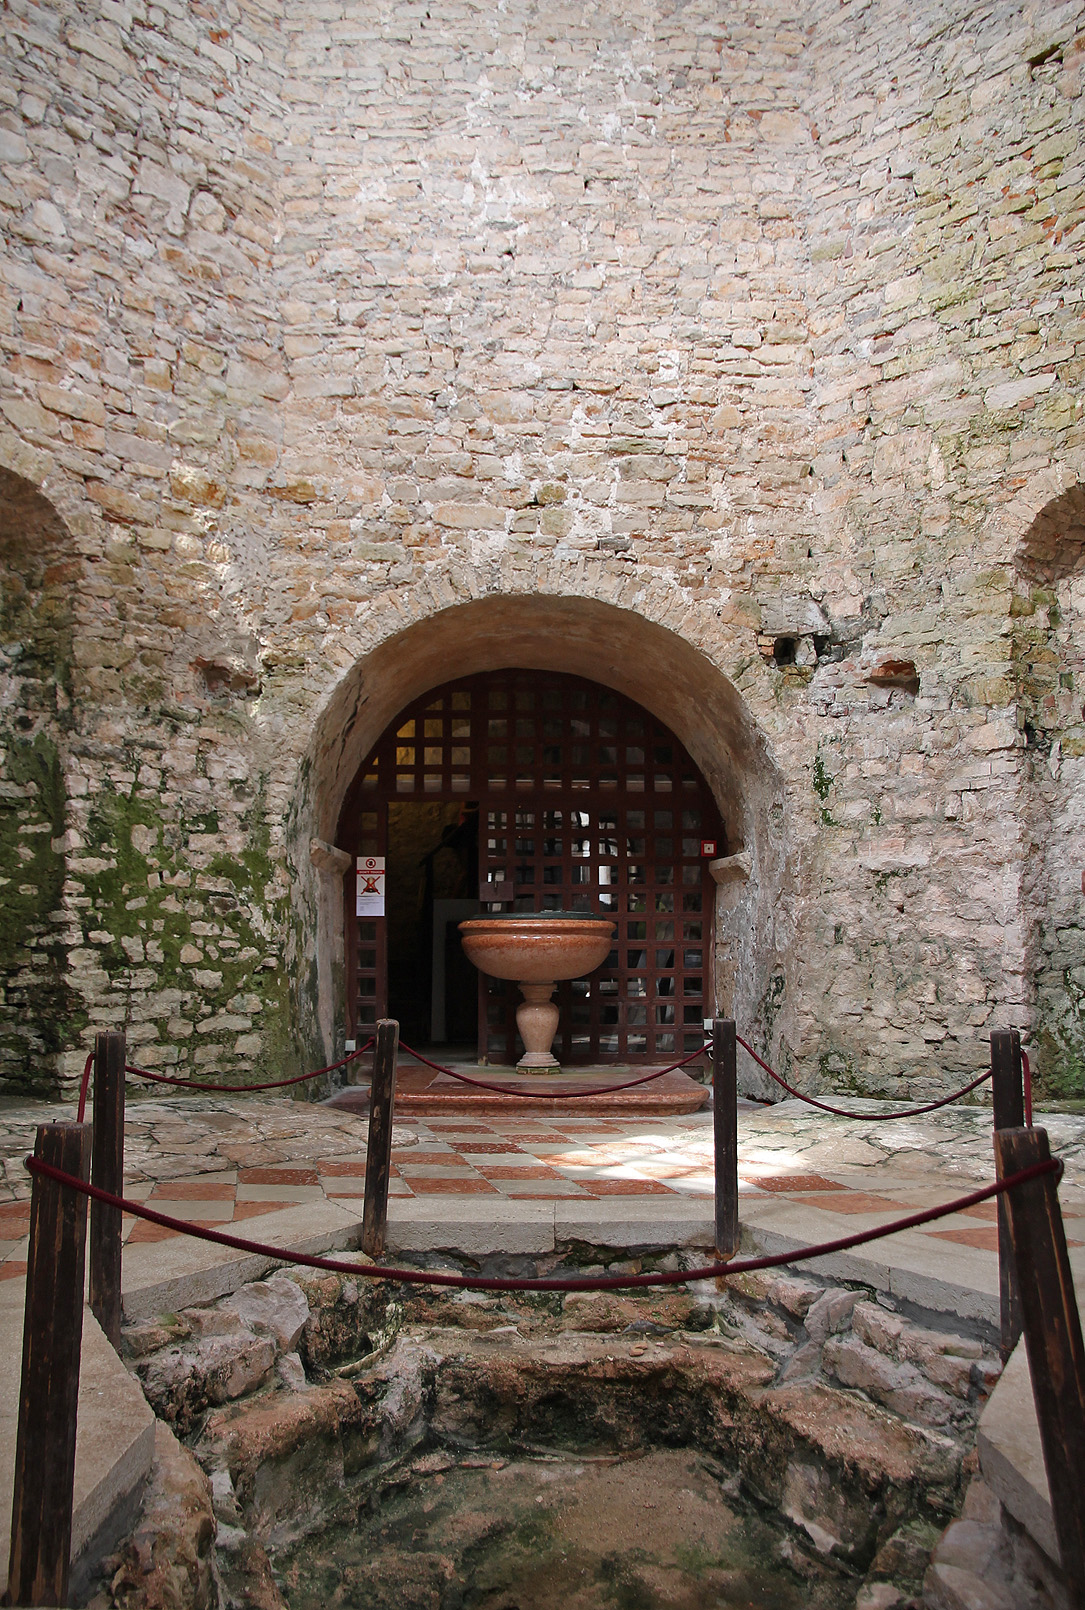 The baptistery. The gate leads to the bell tower.